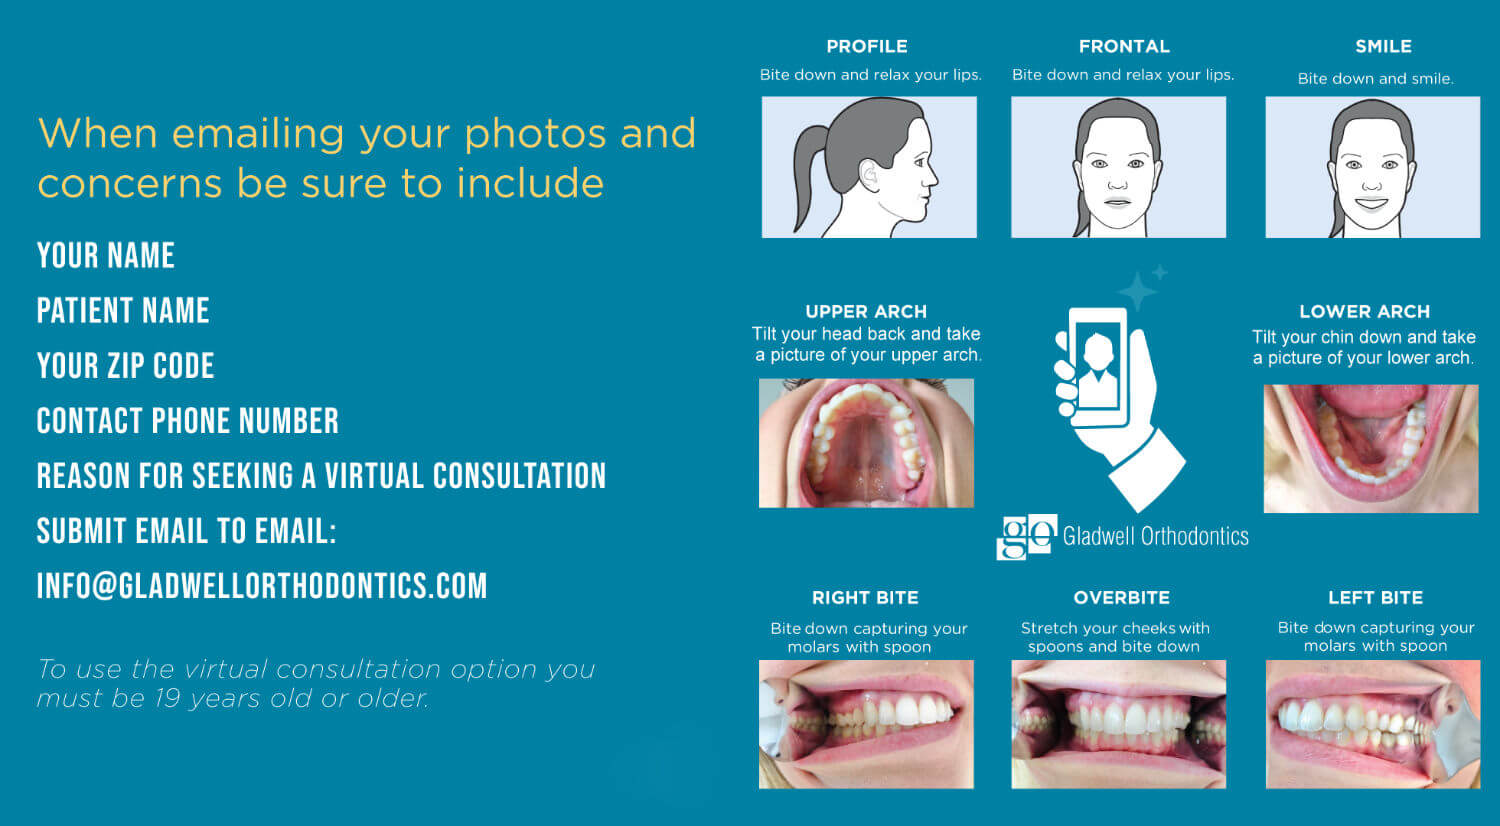 Gladwell Orthodontics - How to Guide for Invisalign Virtual Consultation